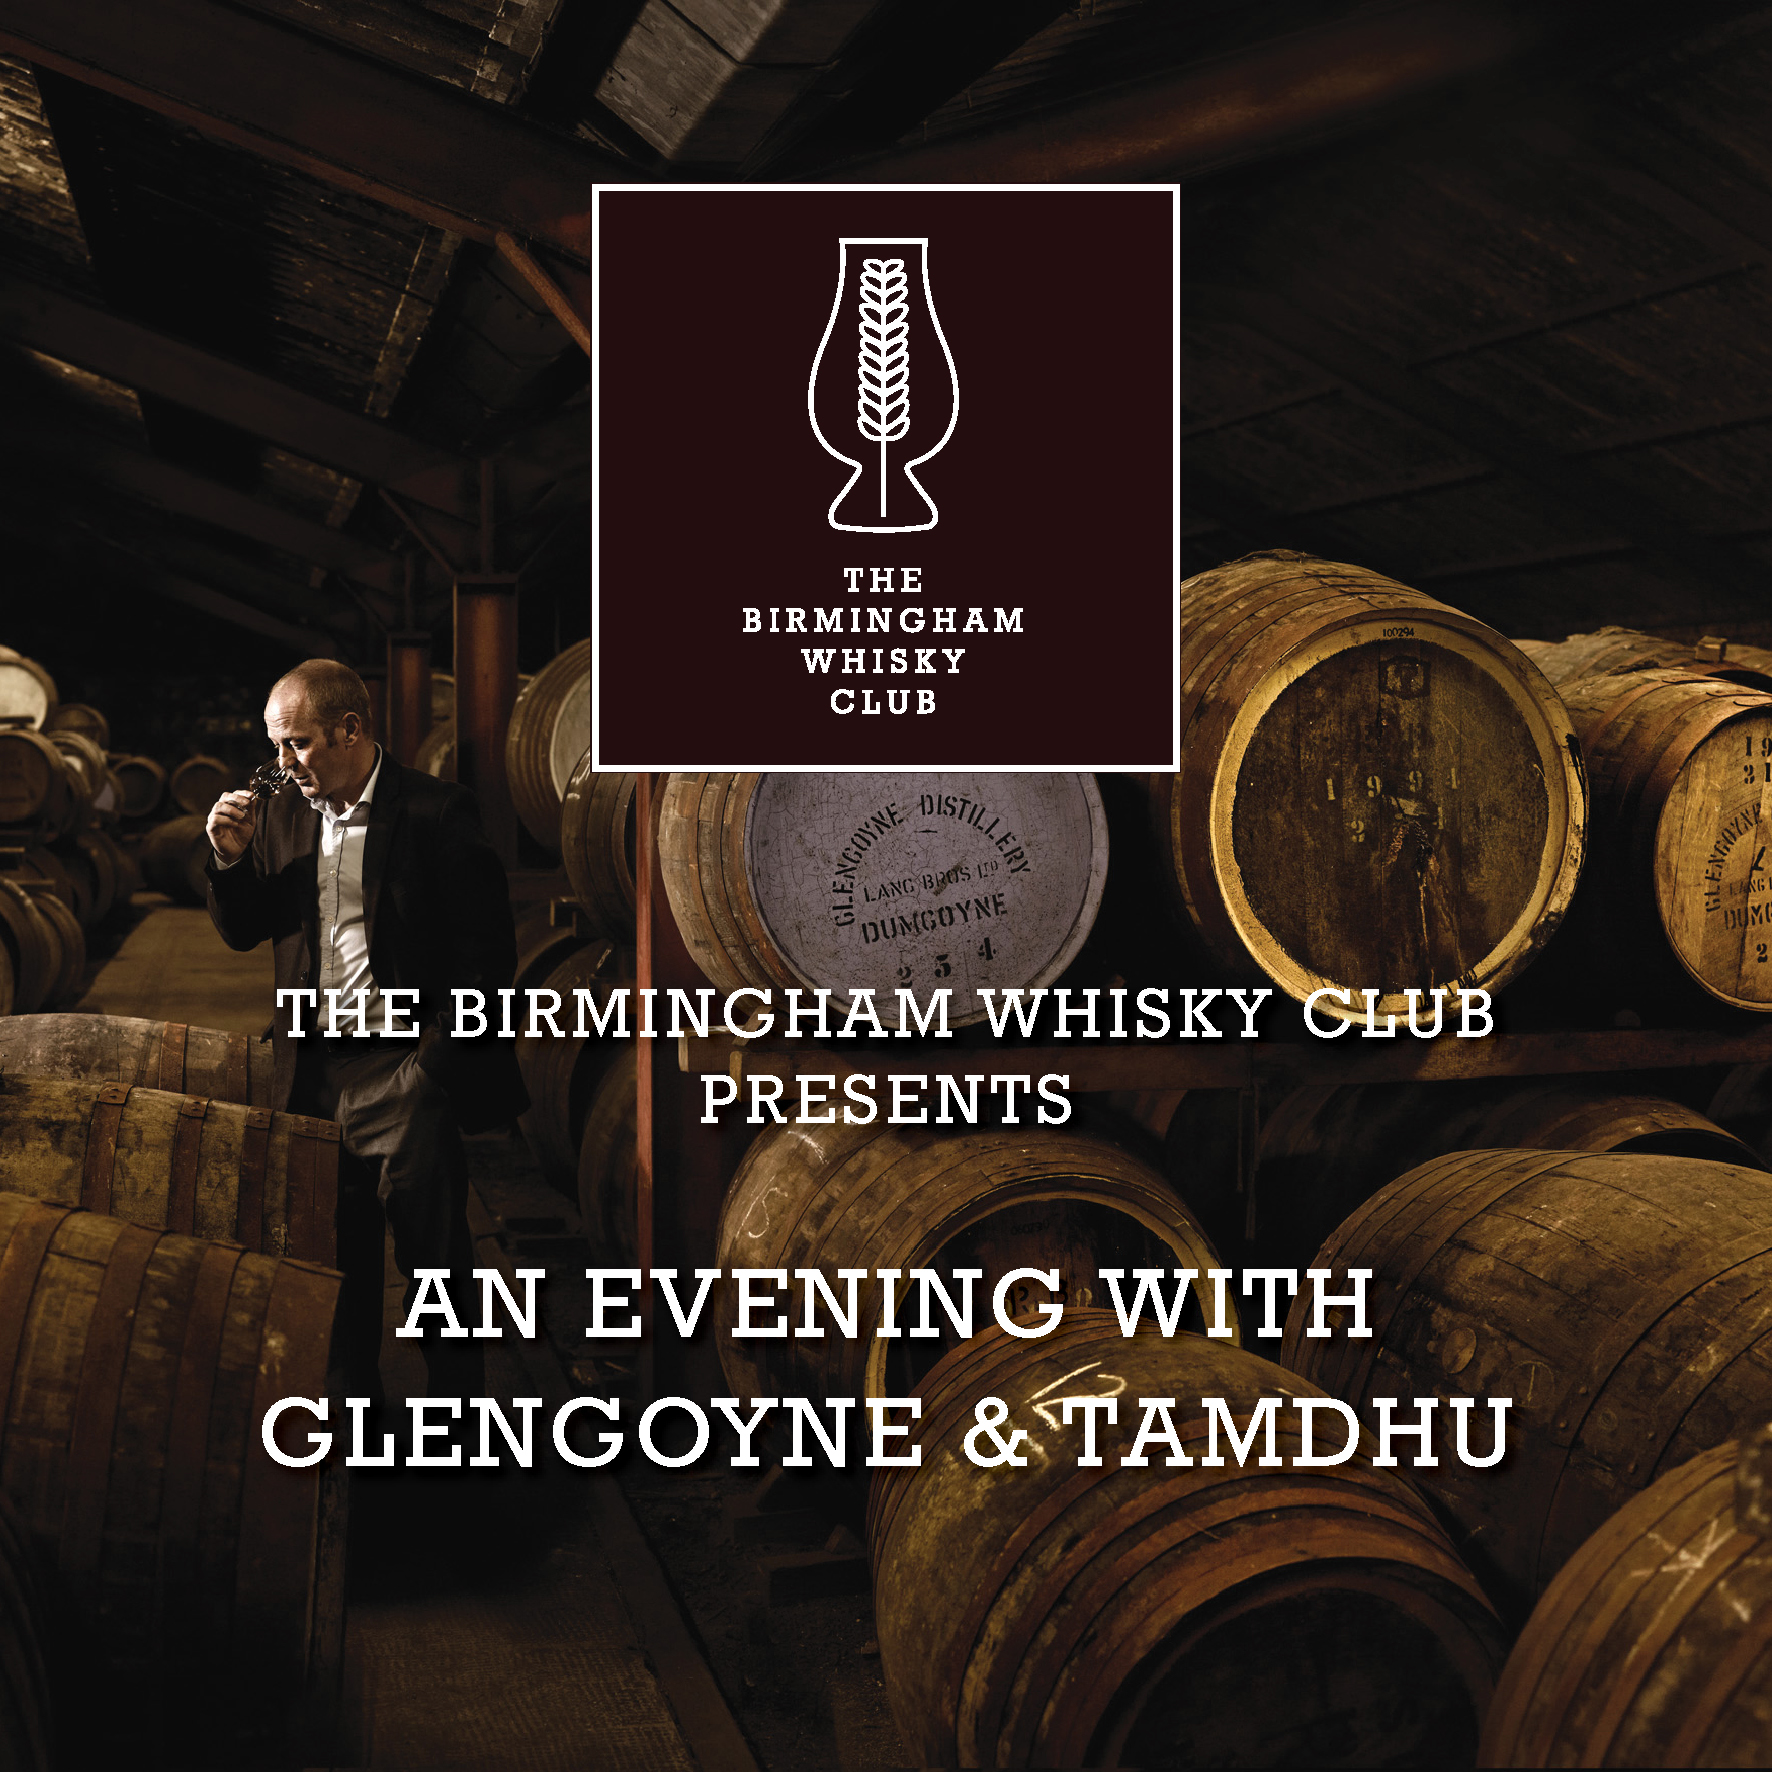 The Birmingham Whisky Club Presents :: An Evening With Glengoyne & Tamdhu